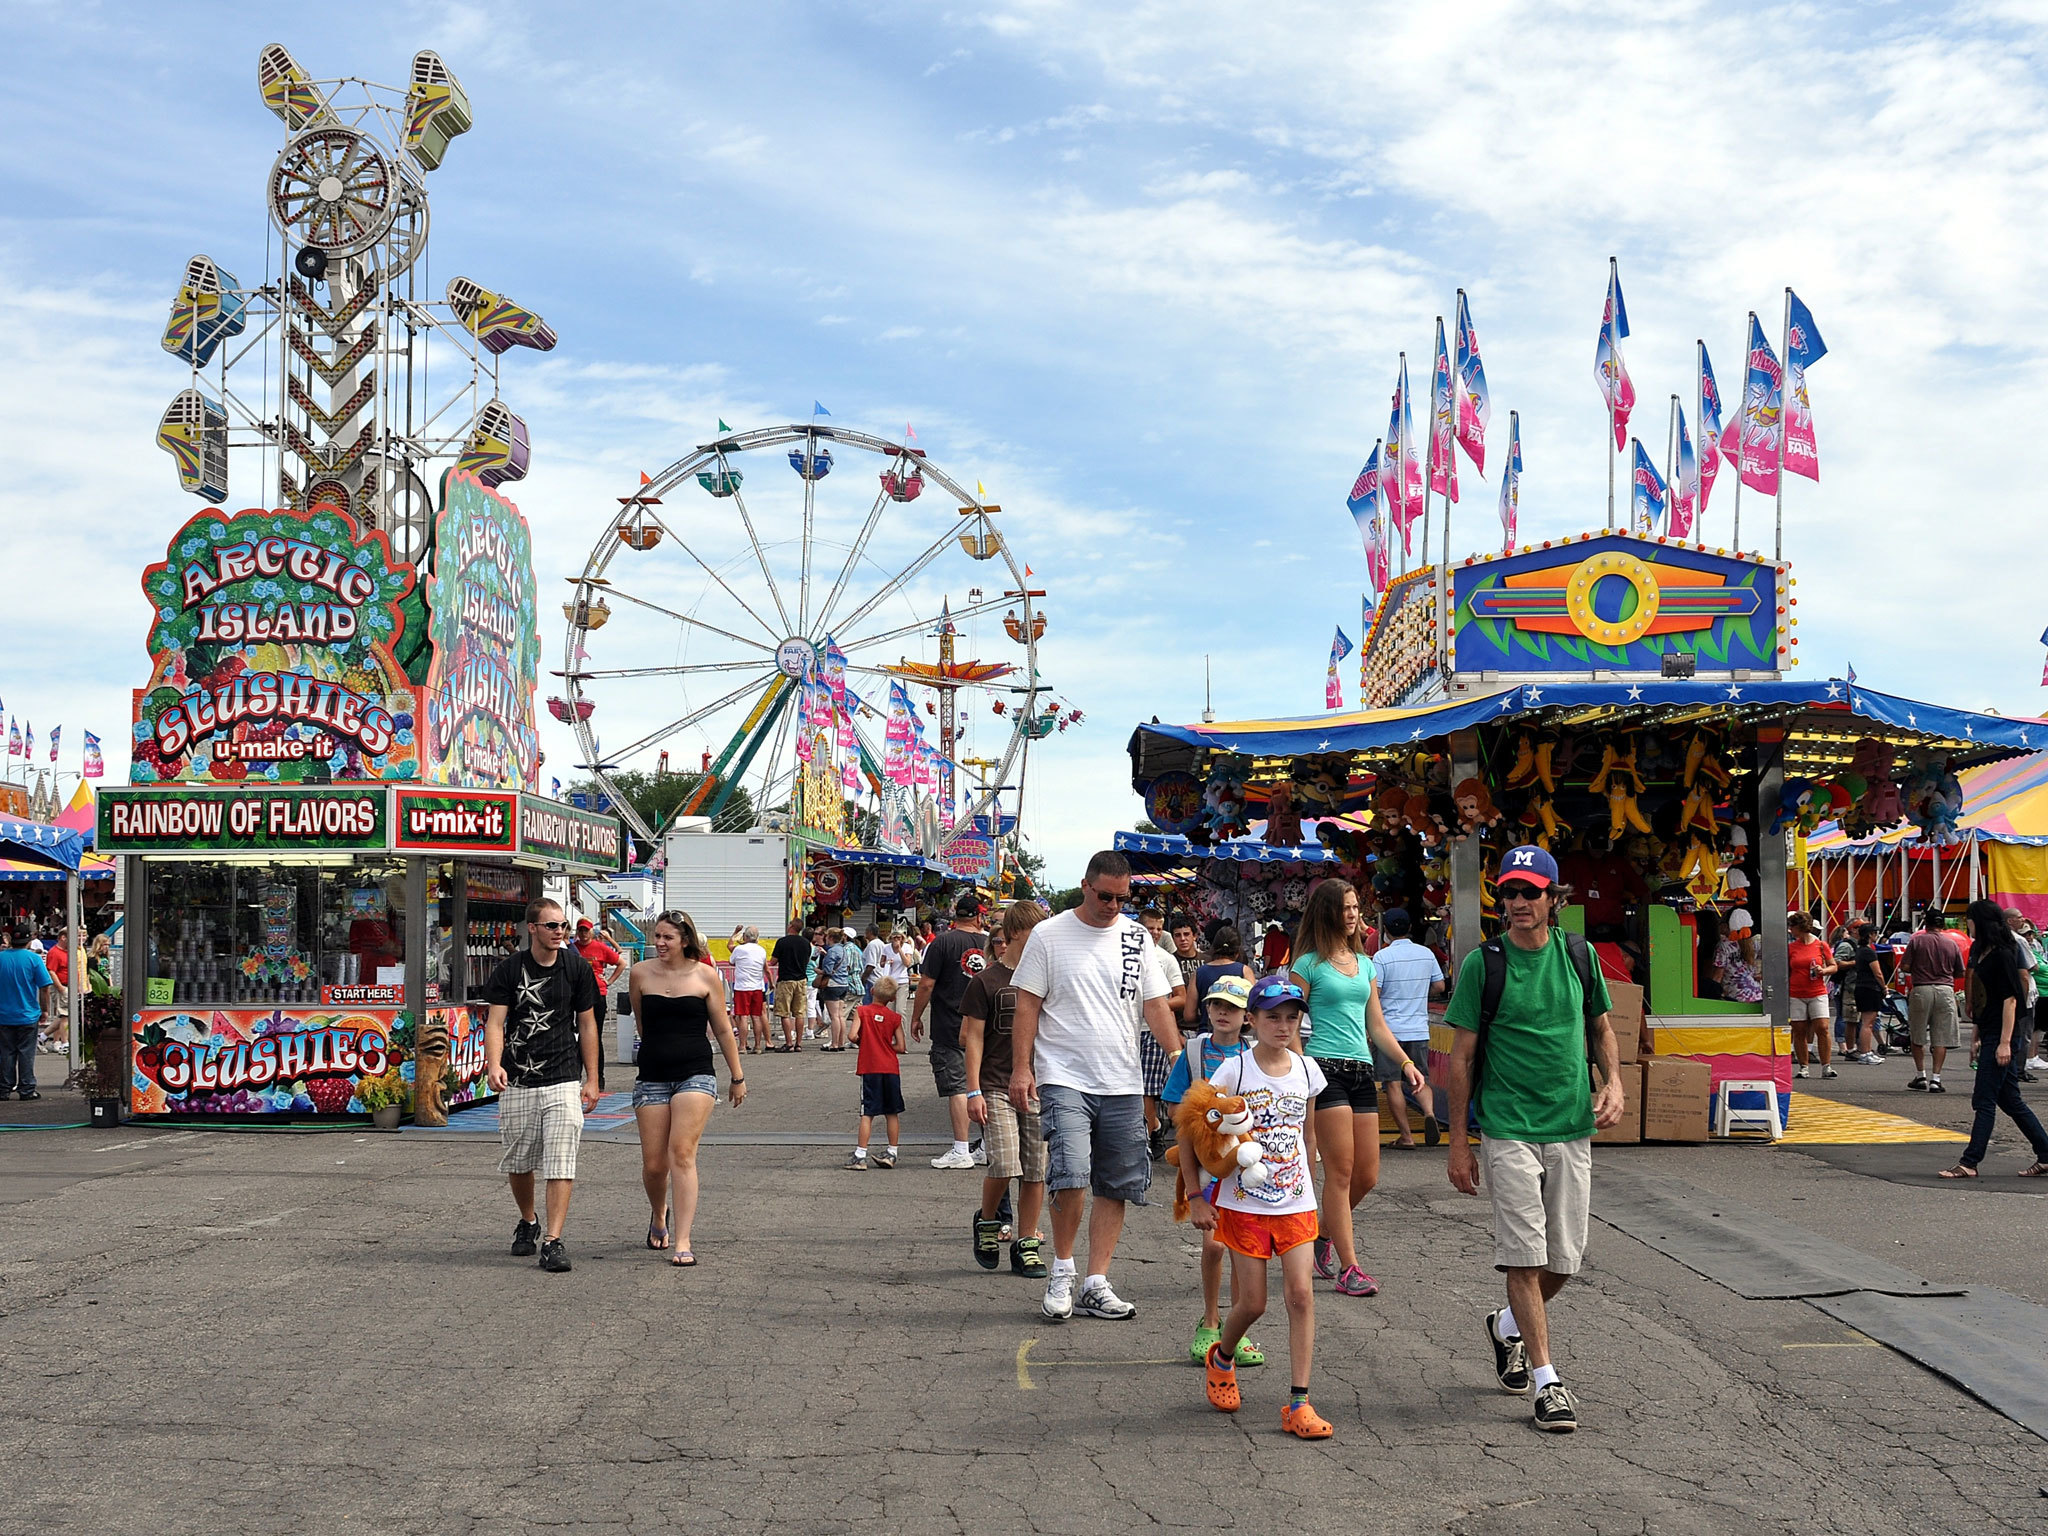 Minnesota State Fair - Minnesota - US